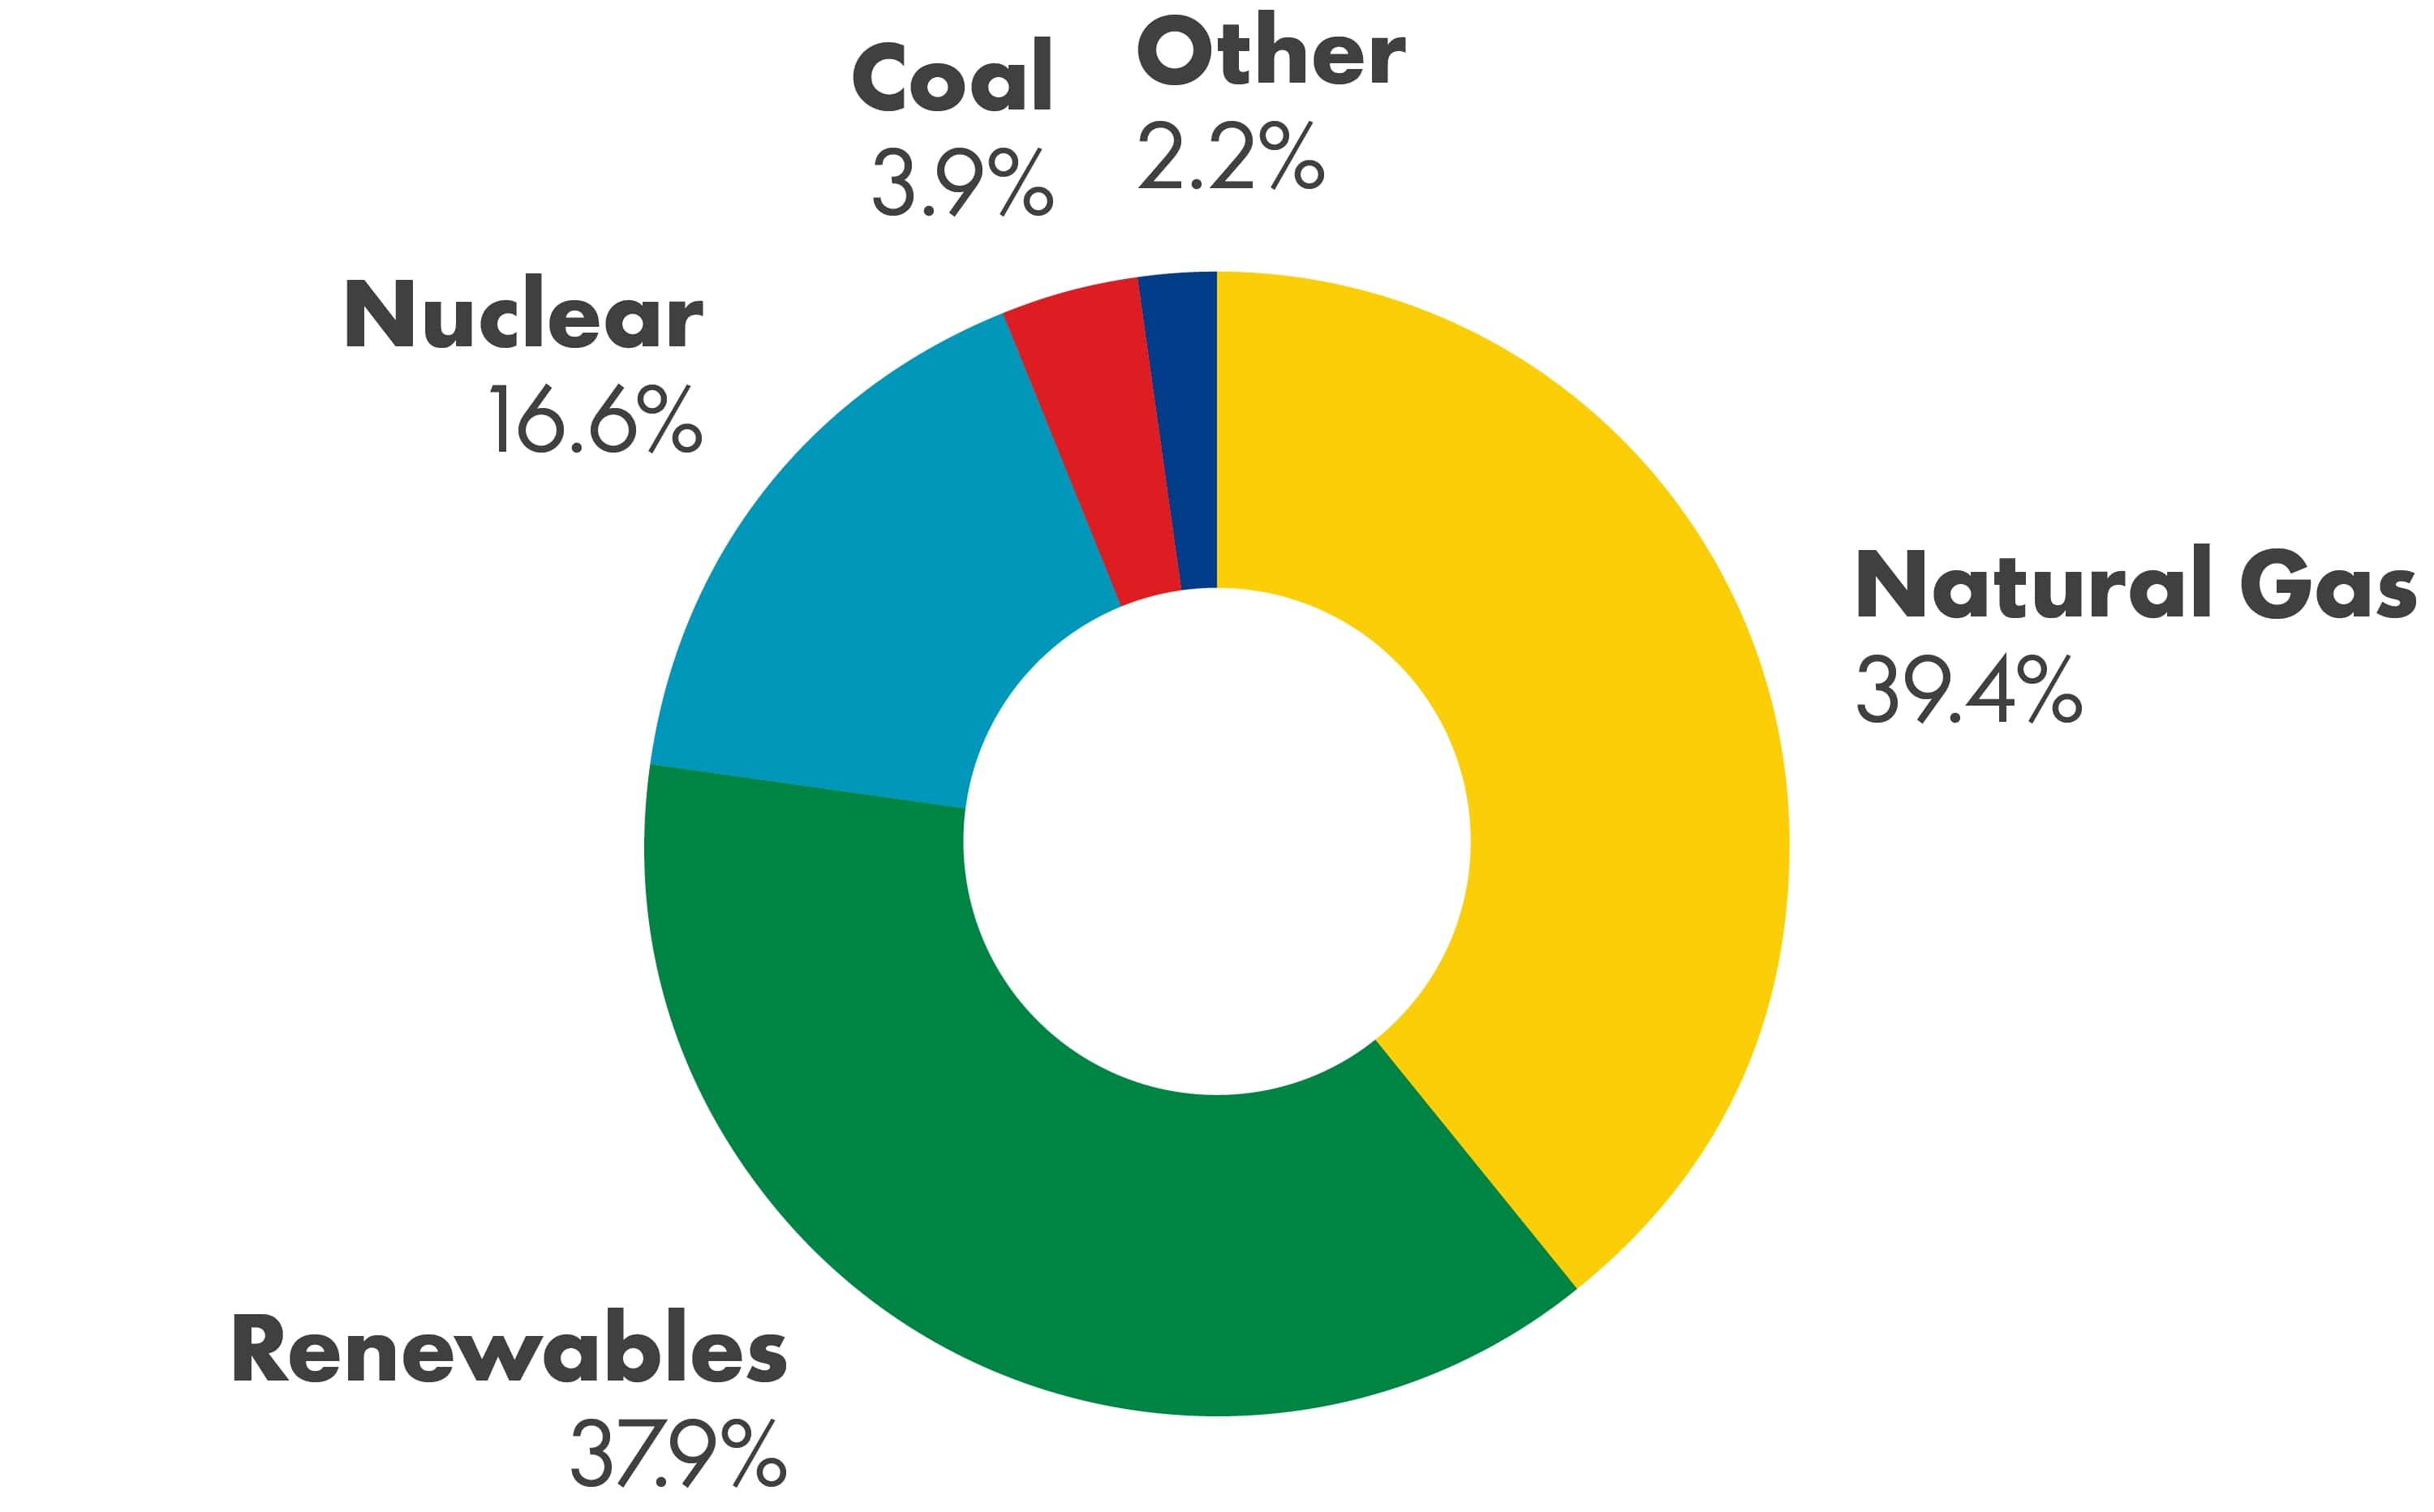 Pie chart showing that the Average UK Fuel Mix was Natural Gas 39.4%, Renewables 37.9%, Nuclear 16.6%, Coal 3.9% and Other 2.2.%.